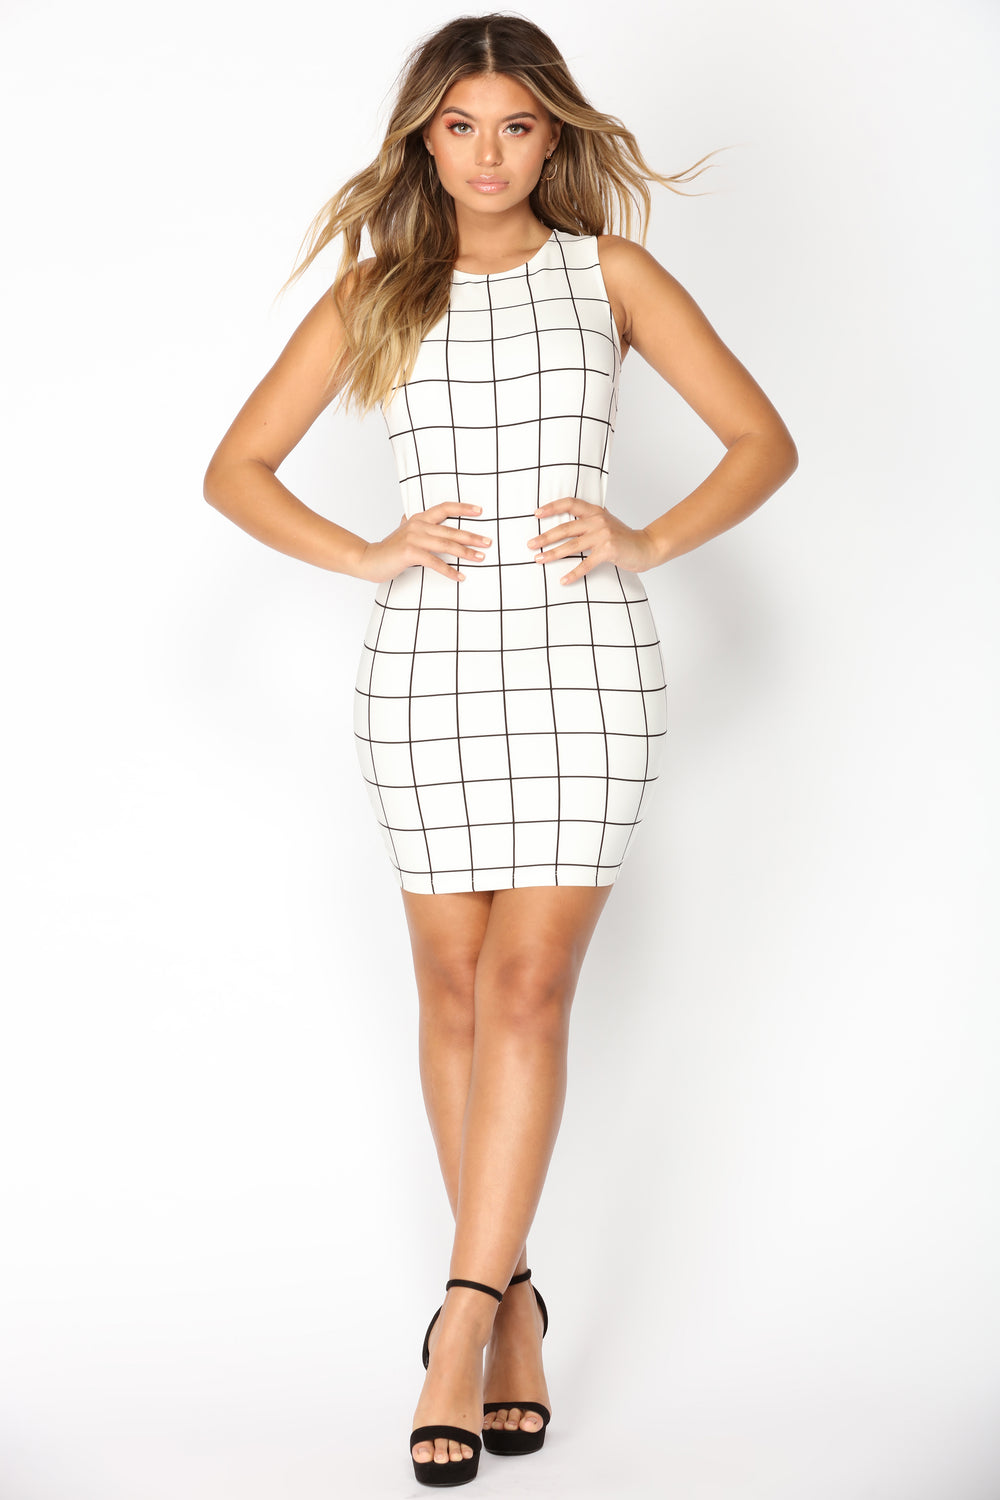 Chip Off The Old Block Dress - White